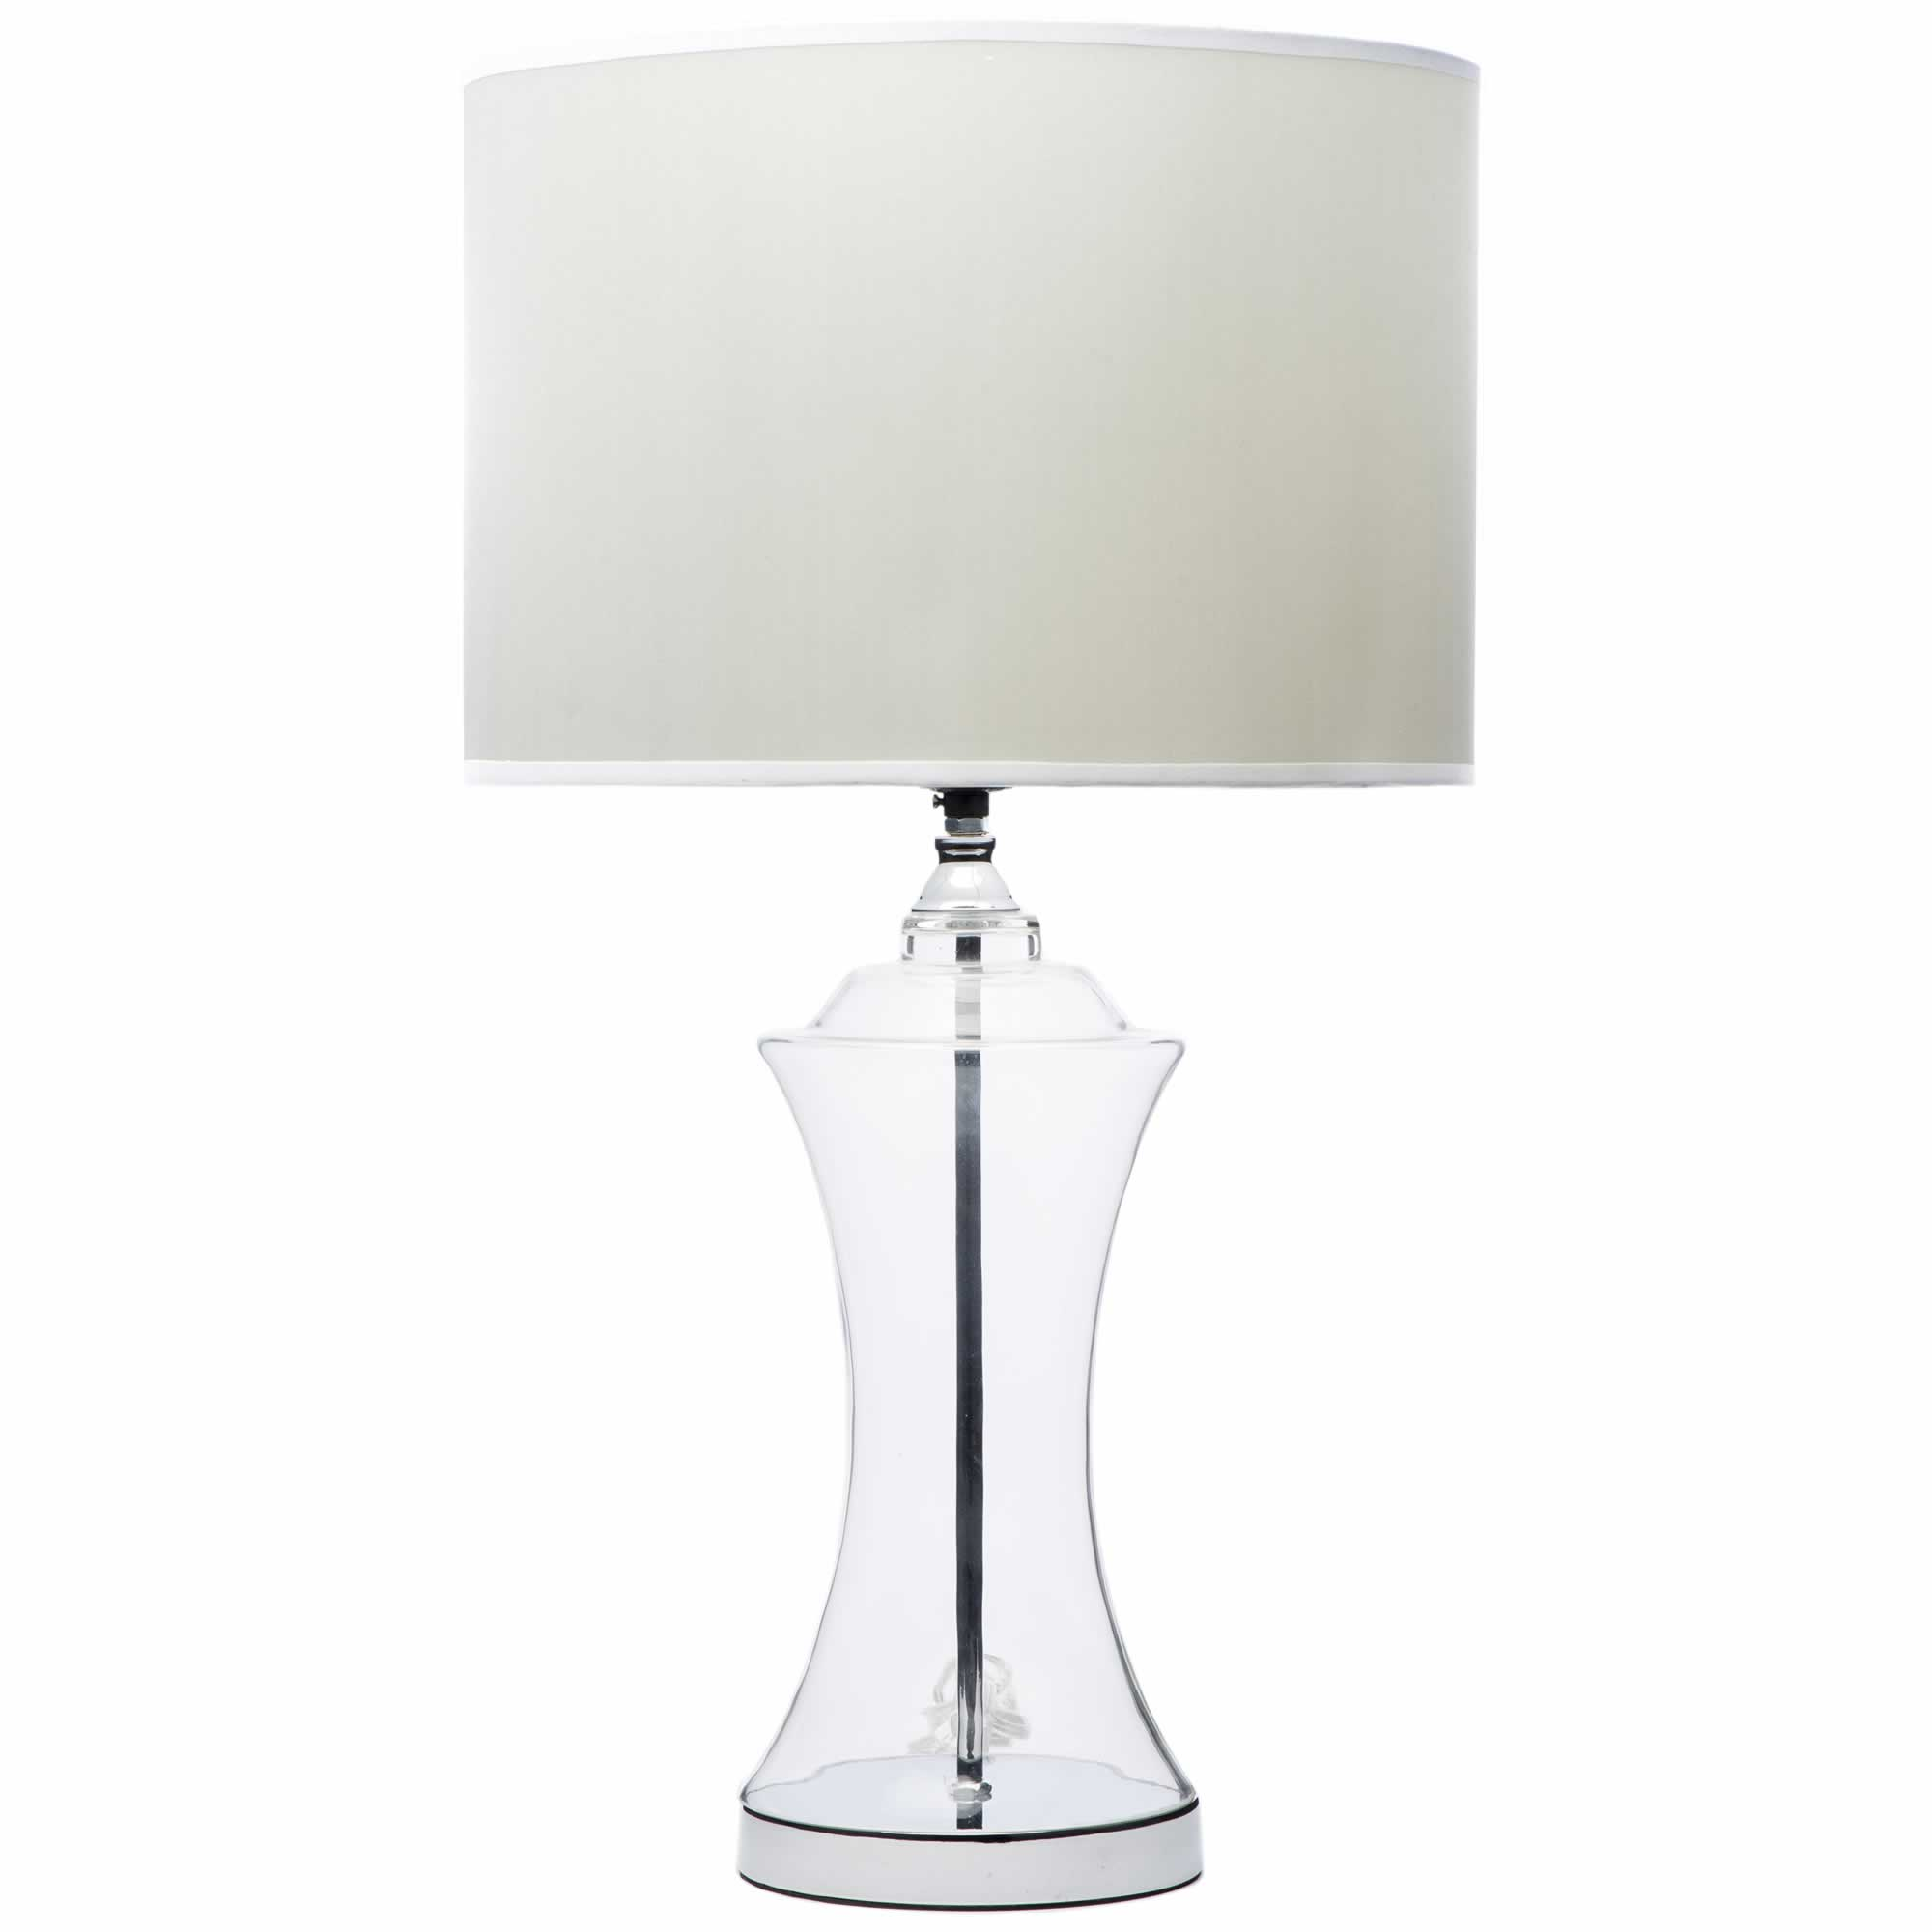 The Frozen Castle Table Lamp : SKU TL0008 Contemporary Lamps by Modern Crowd